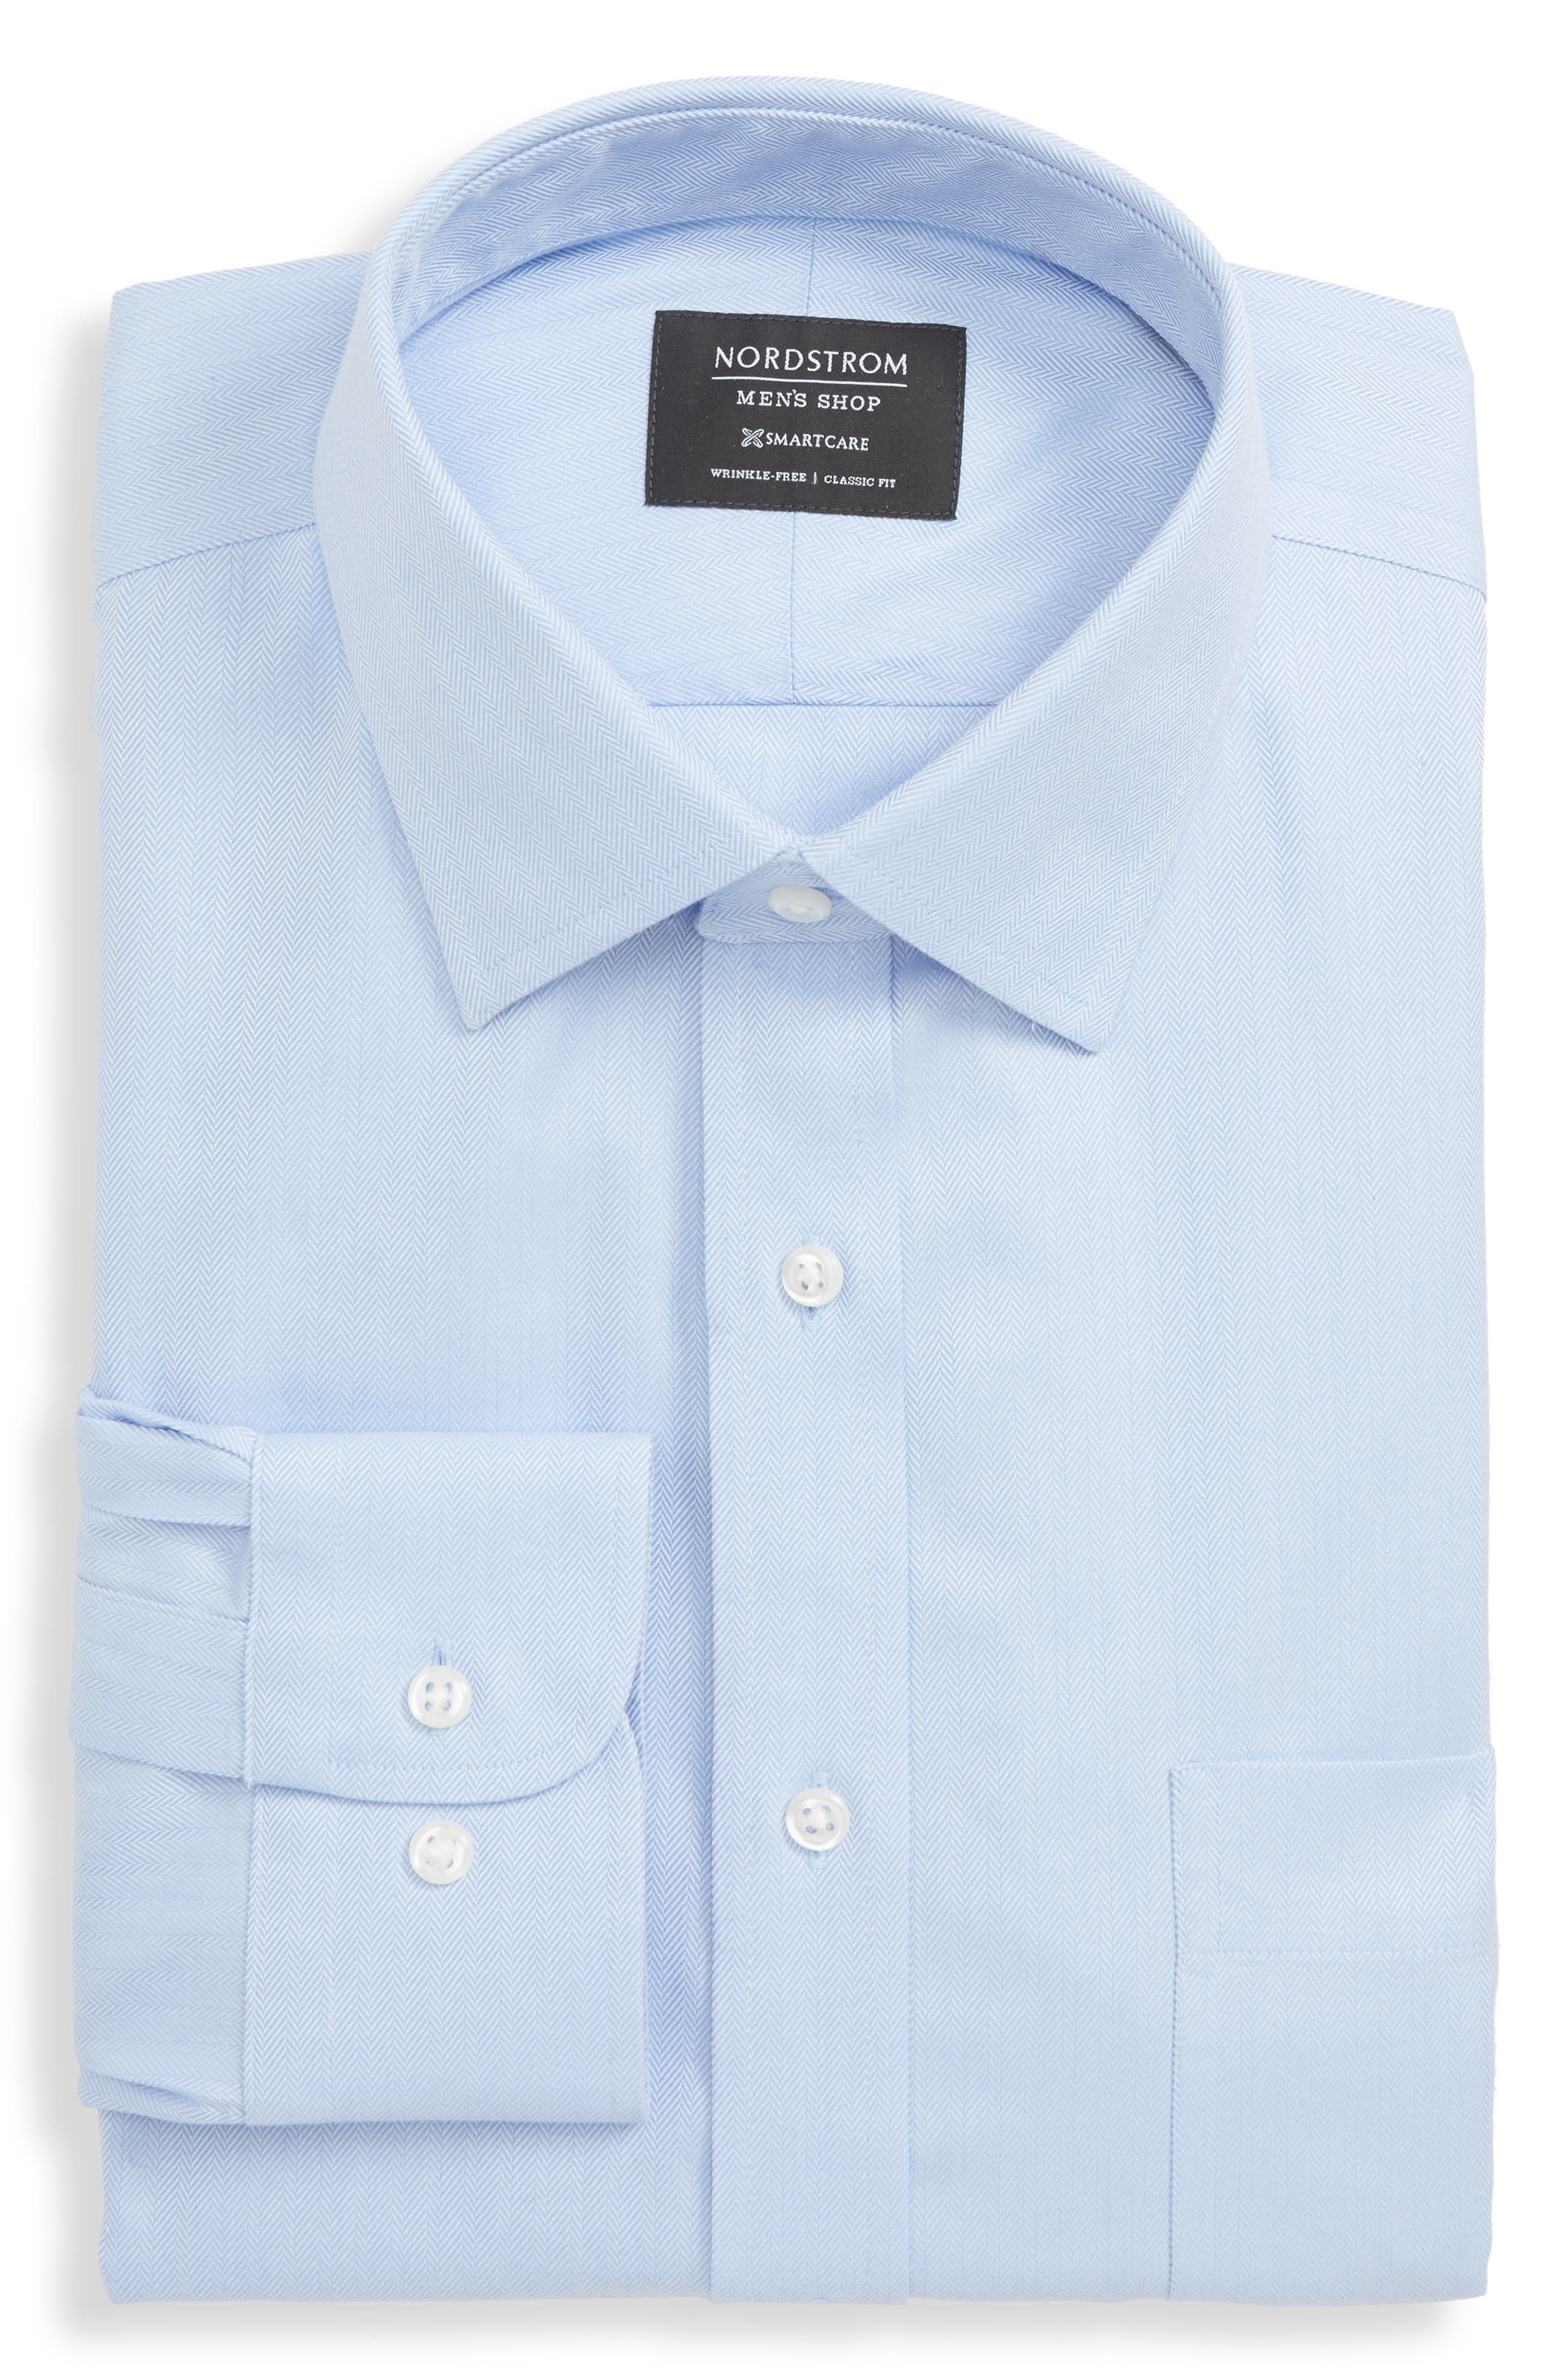 Nordstrom Shop Smartcare(TM) Classic Fit Herringbone Dress Shirt - Blue